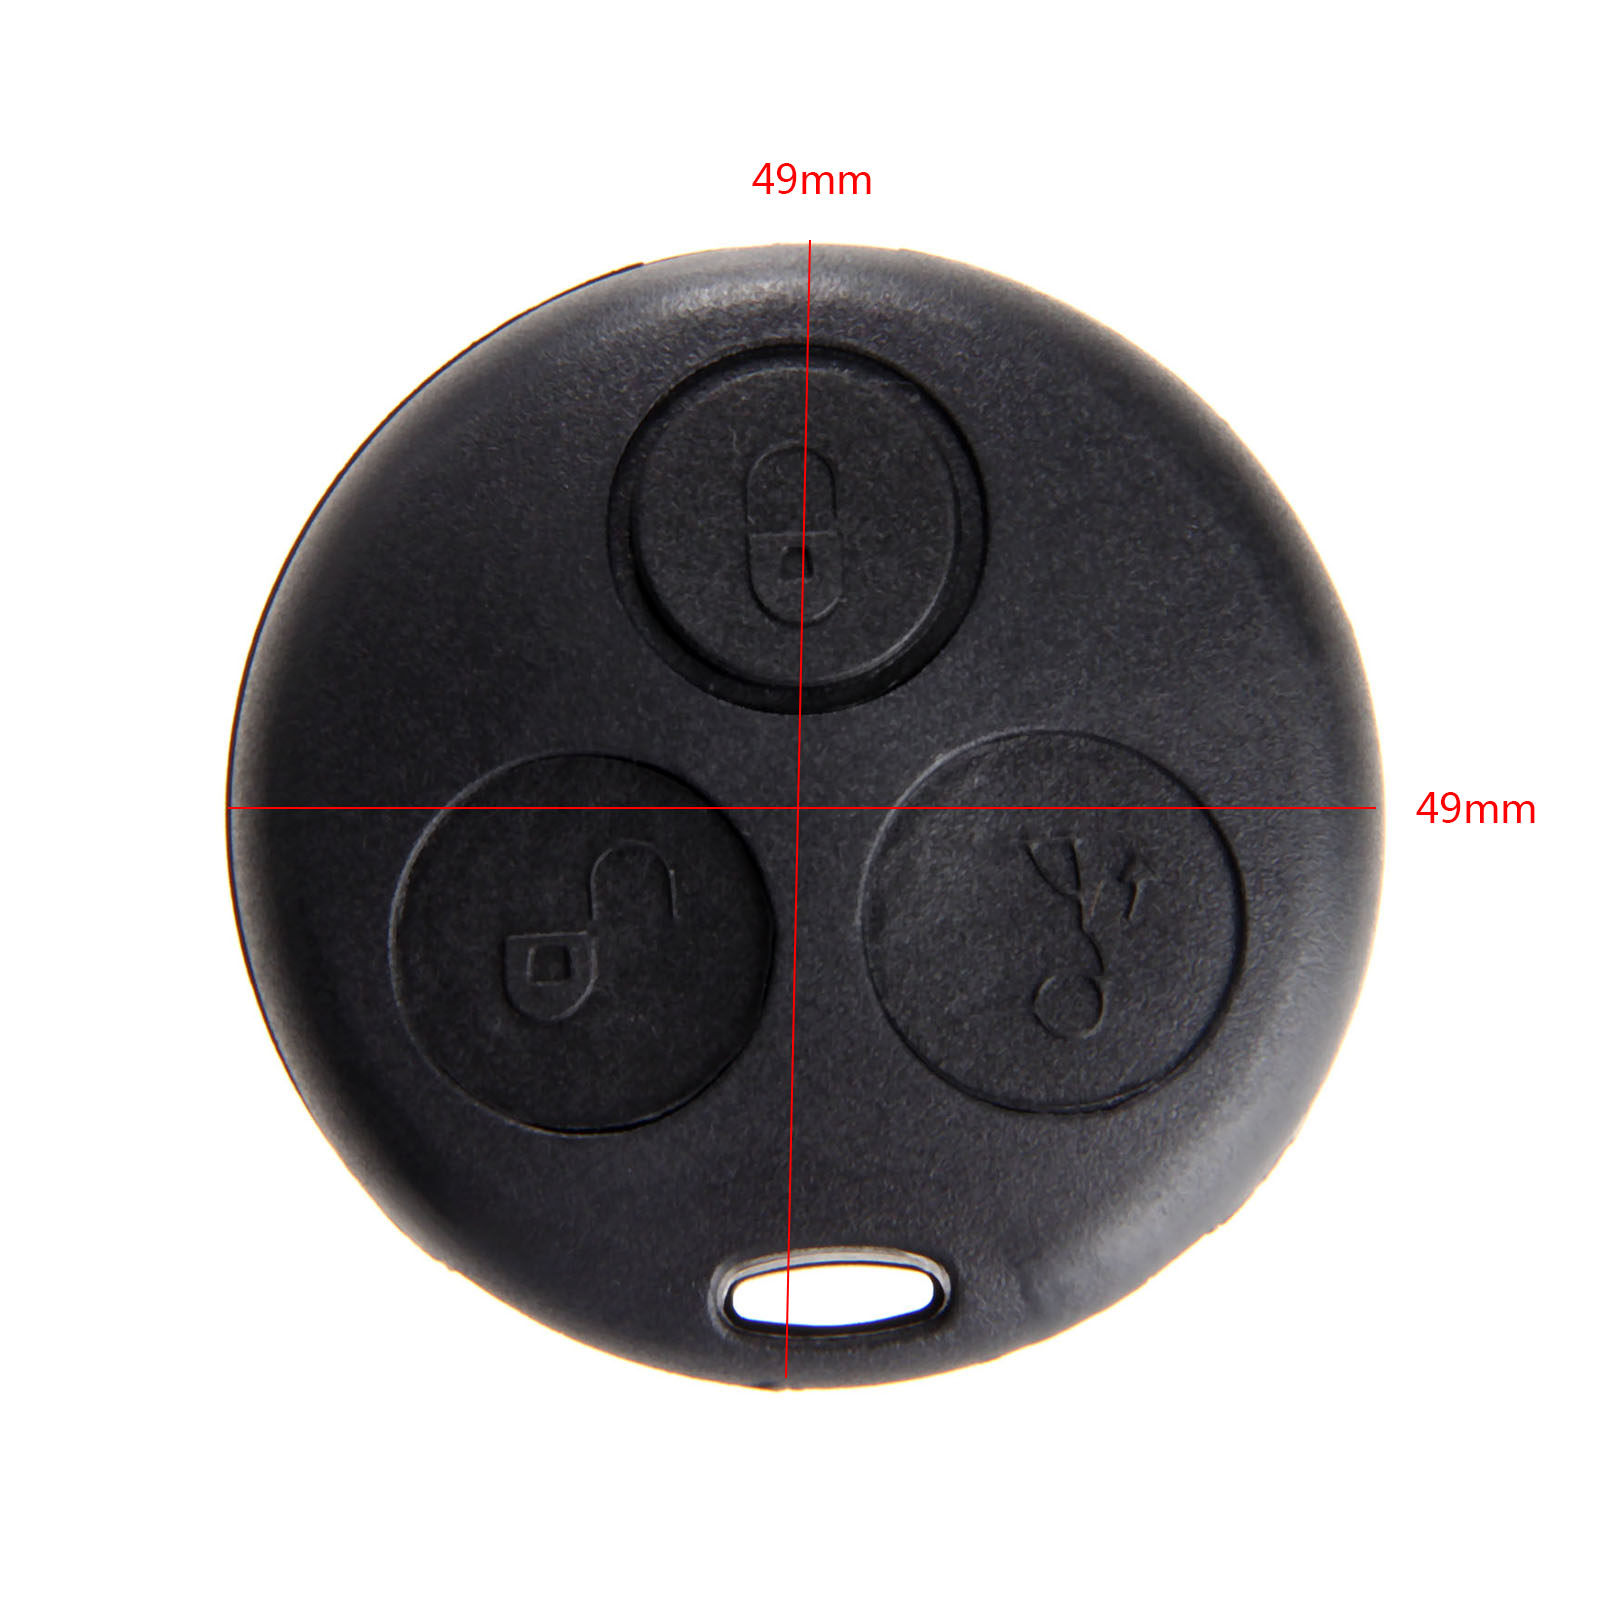 Image 2 - 3 Button Auto Key Shell Case Replacement Fob For Mercedes Benz SMART Fortwo City Coupe Cabrio Crossblade Roadster-in Car Key from Automobiles & Motorcycles